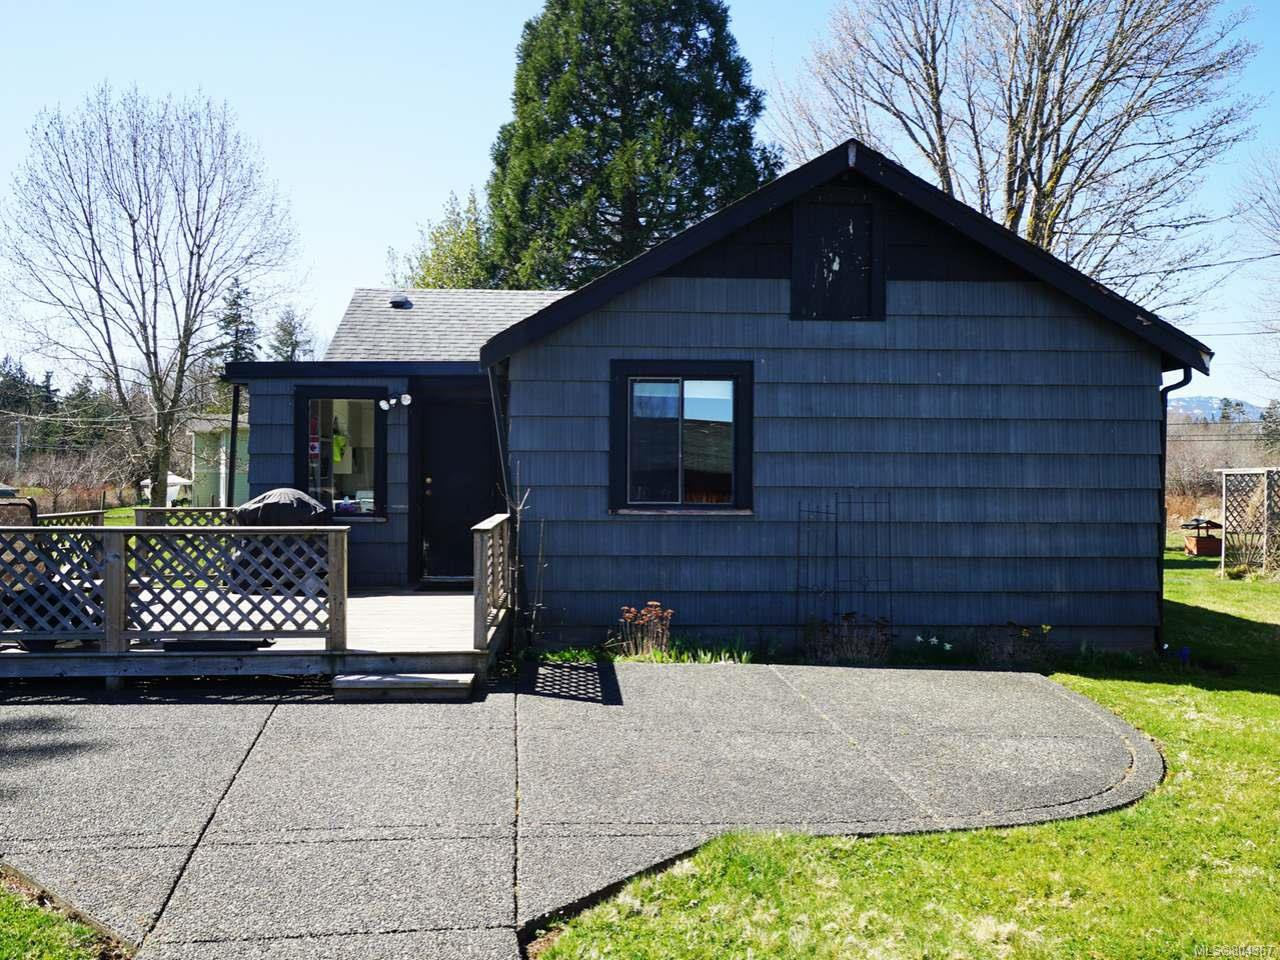 Photo 3: Photos: 5028 Headquarters Rd in COURTENAY: CV Courtenay North House for sale (Comox Valley)  : MLS®# 804367